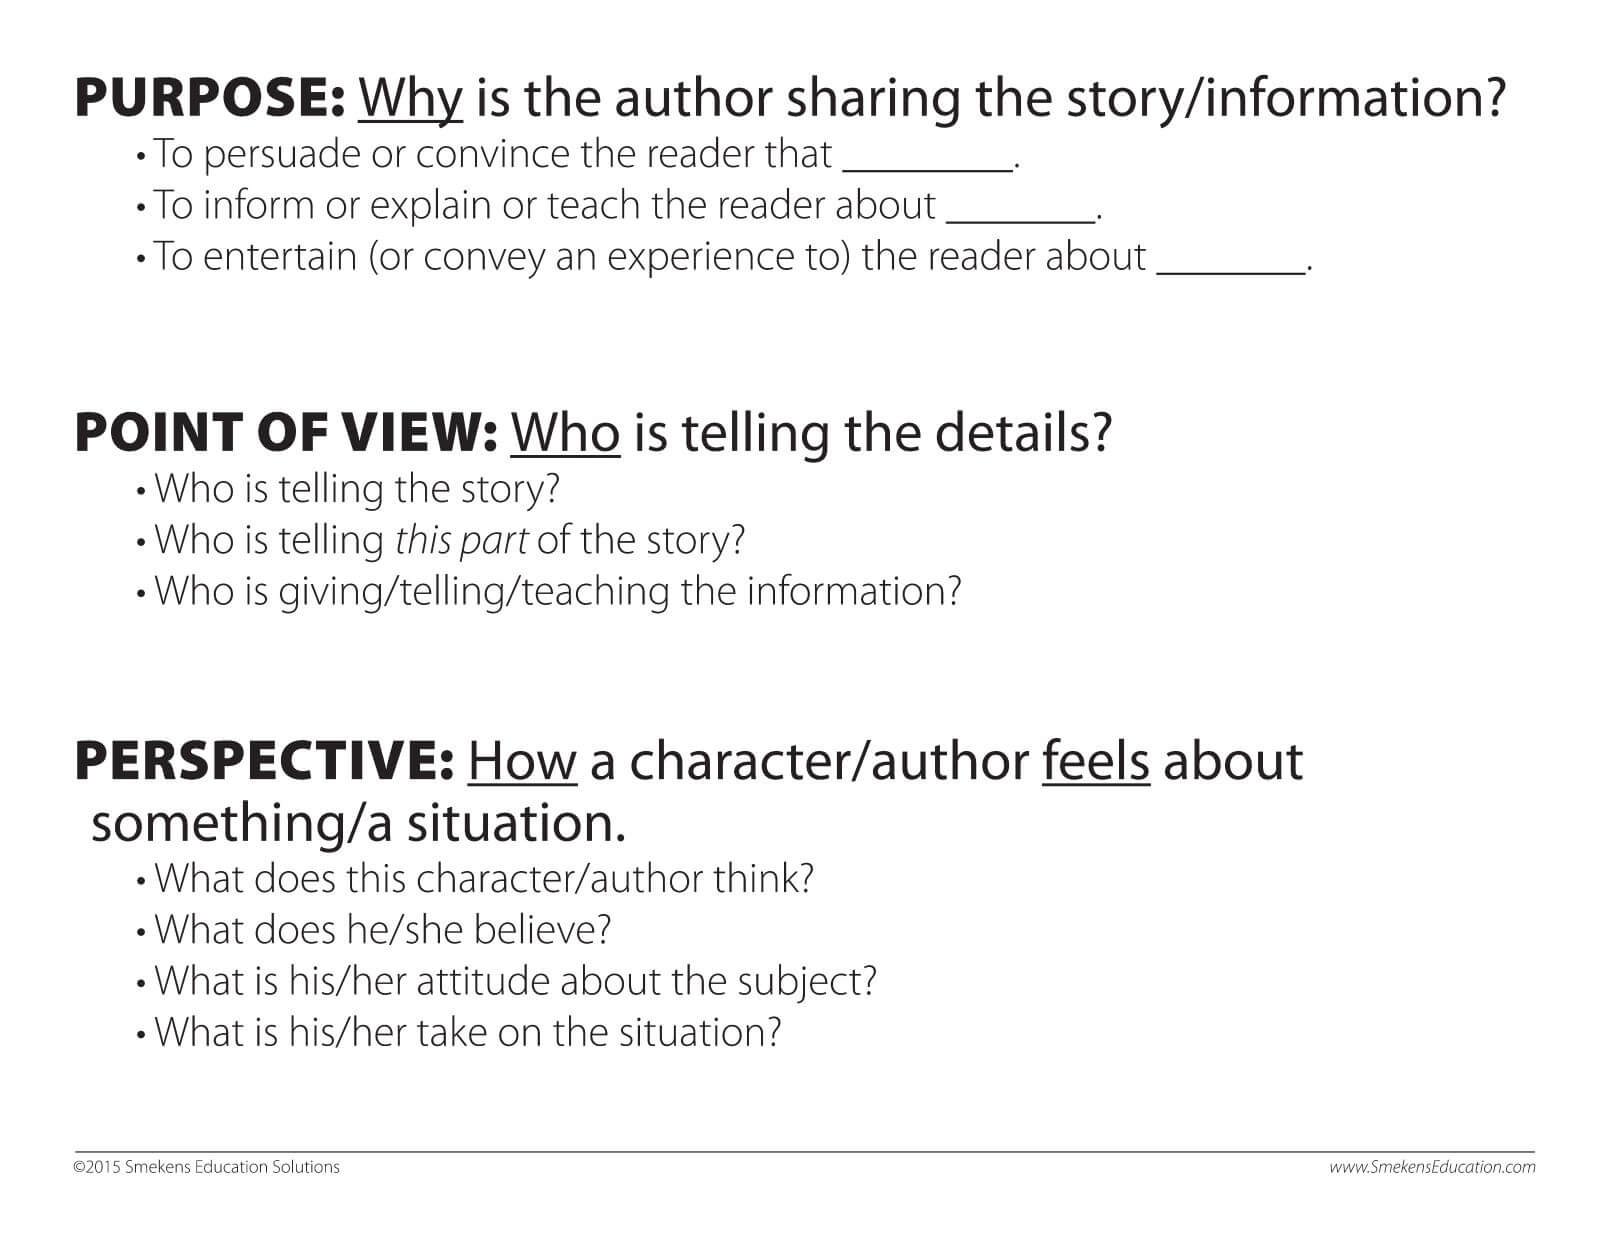 Purpose, Point of View, and Perspective Sheet